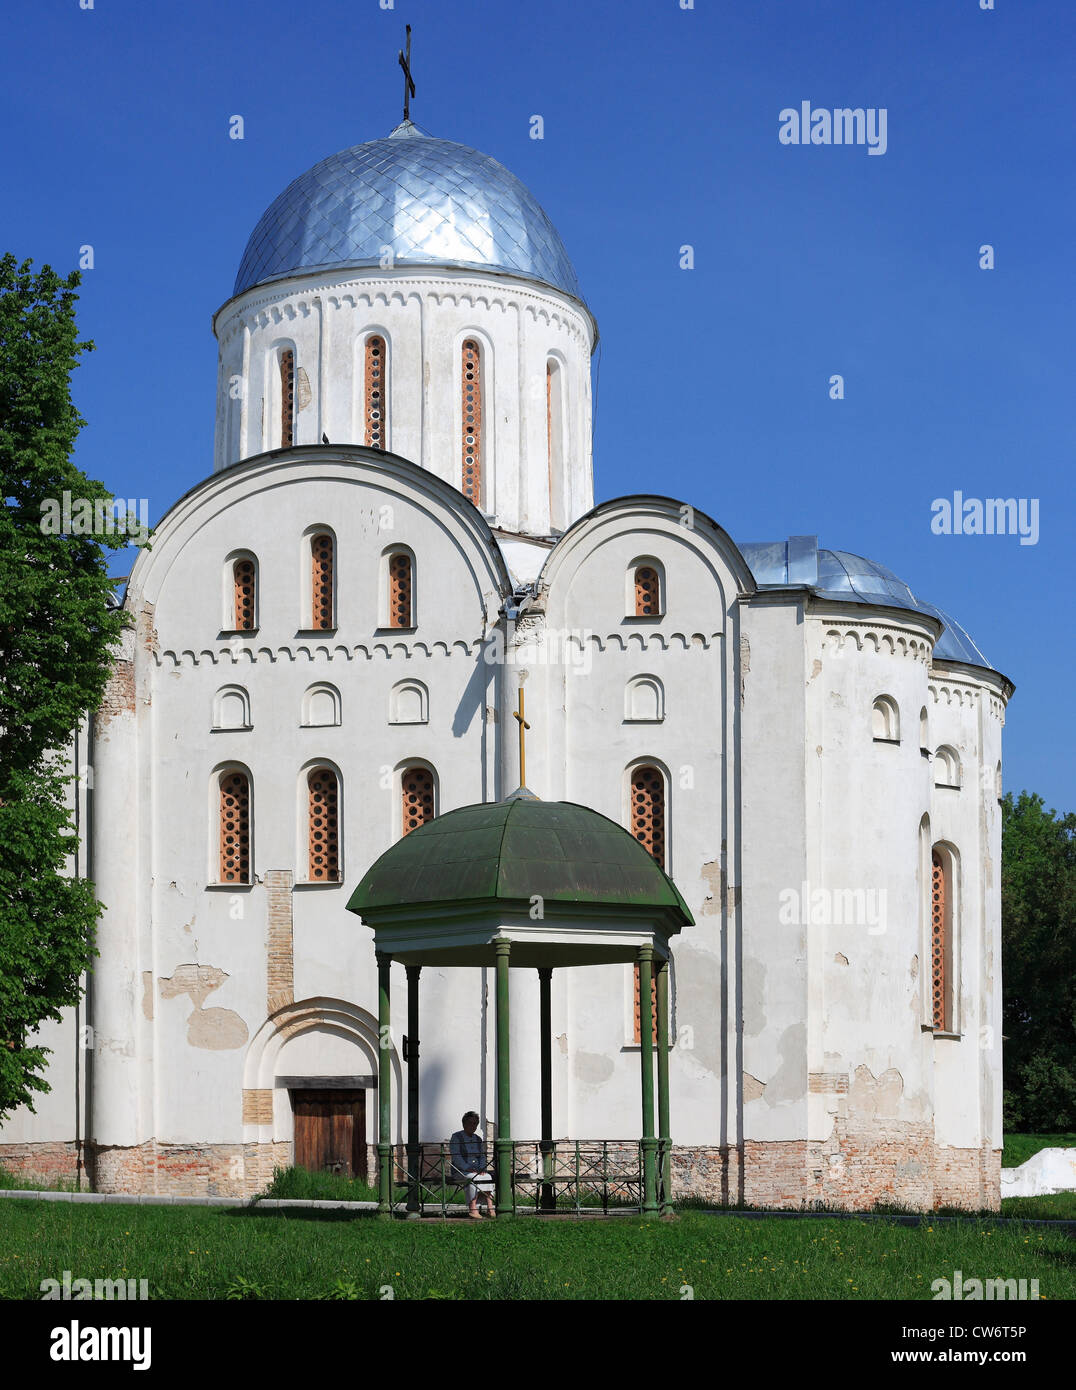 Cathedral of St. Boris and St. Gleb (1123), Ukraine, Chernigov - Stock Image